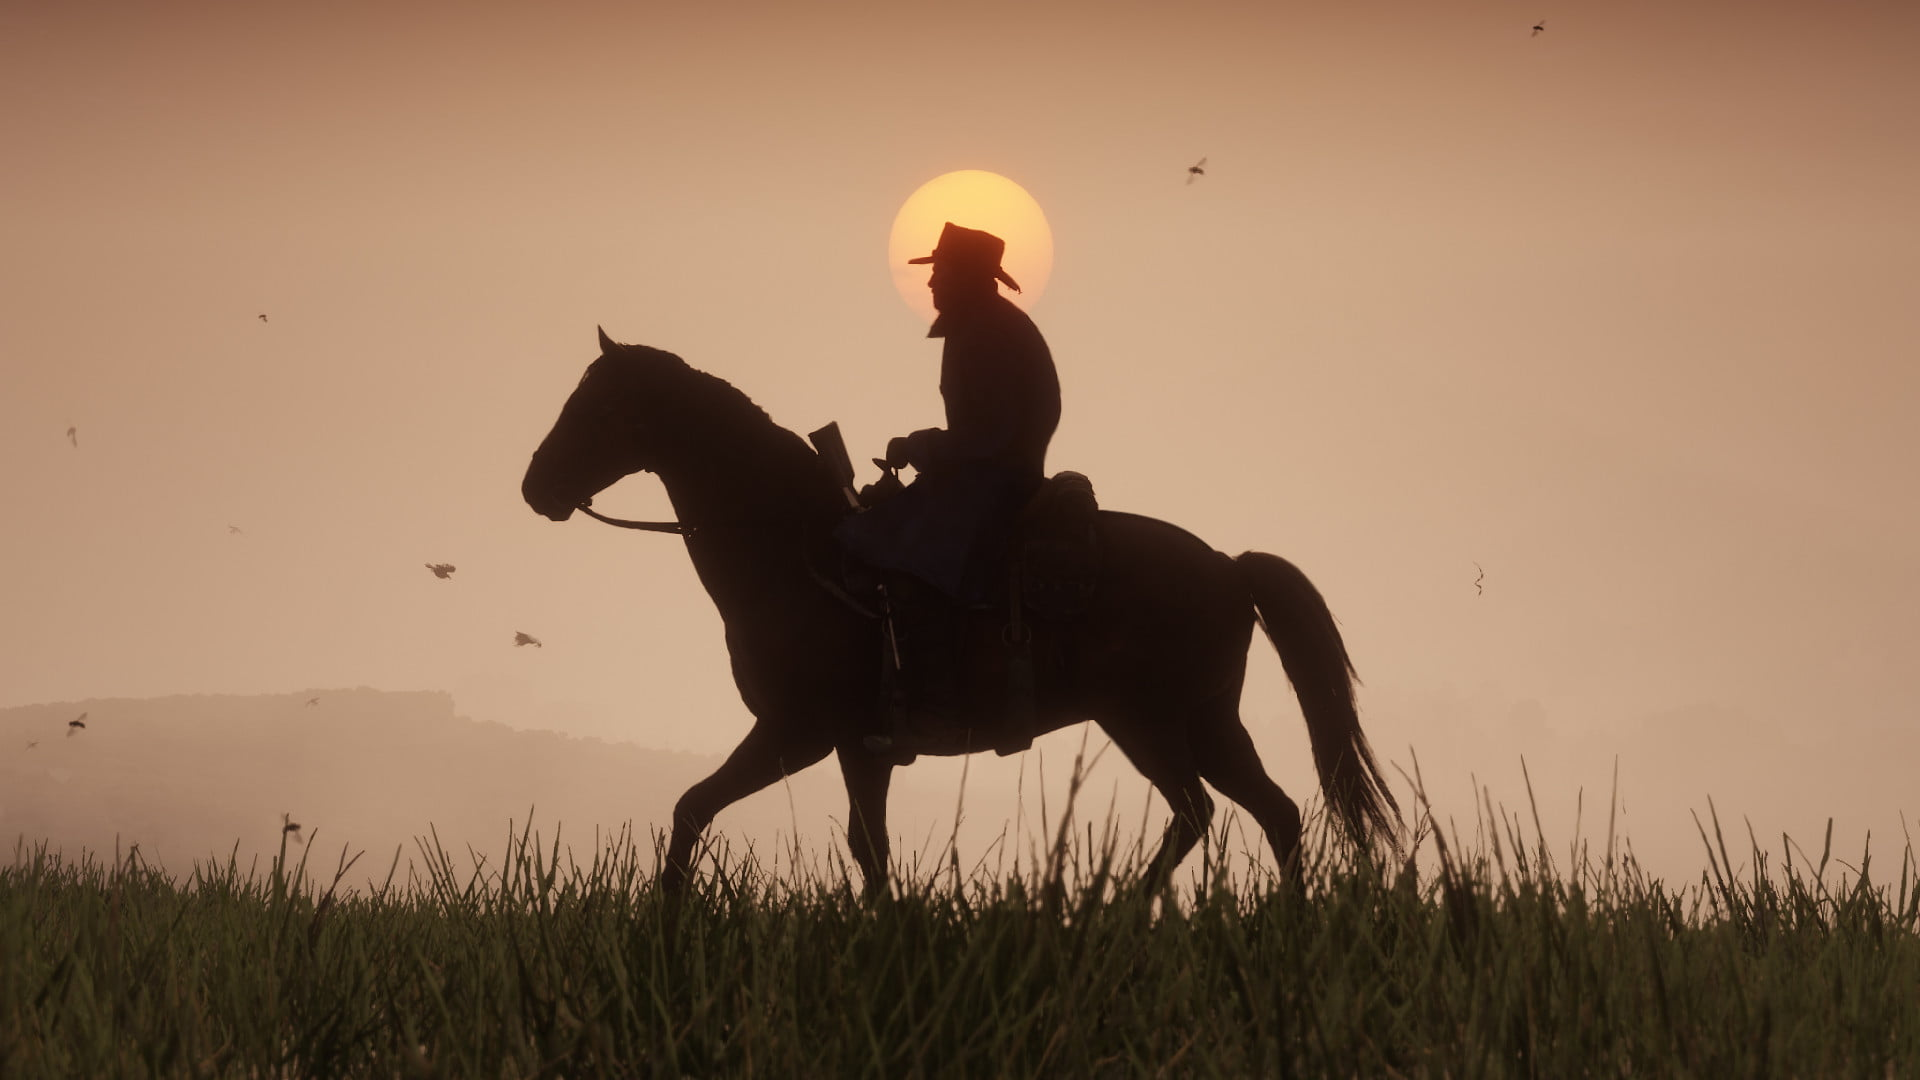 Red Dead Redemption 2 silhouette